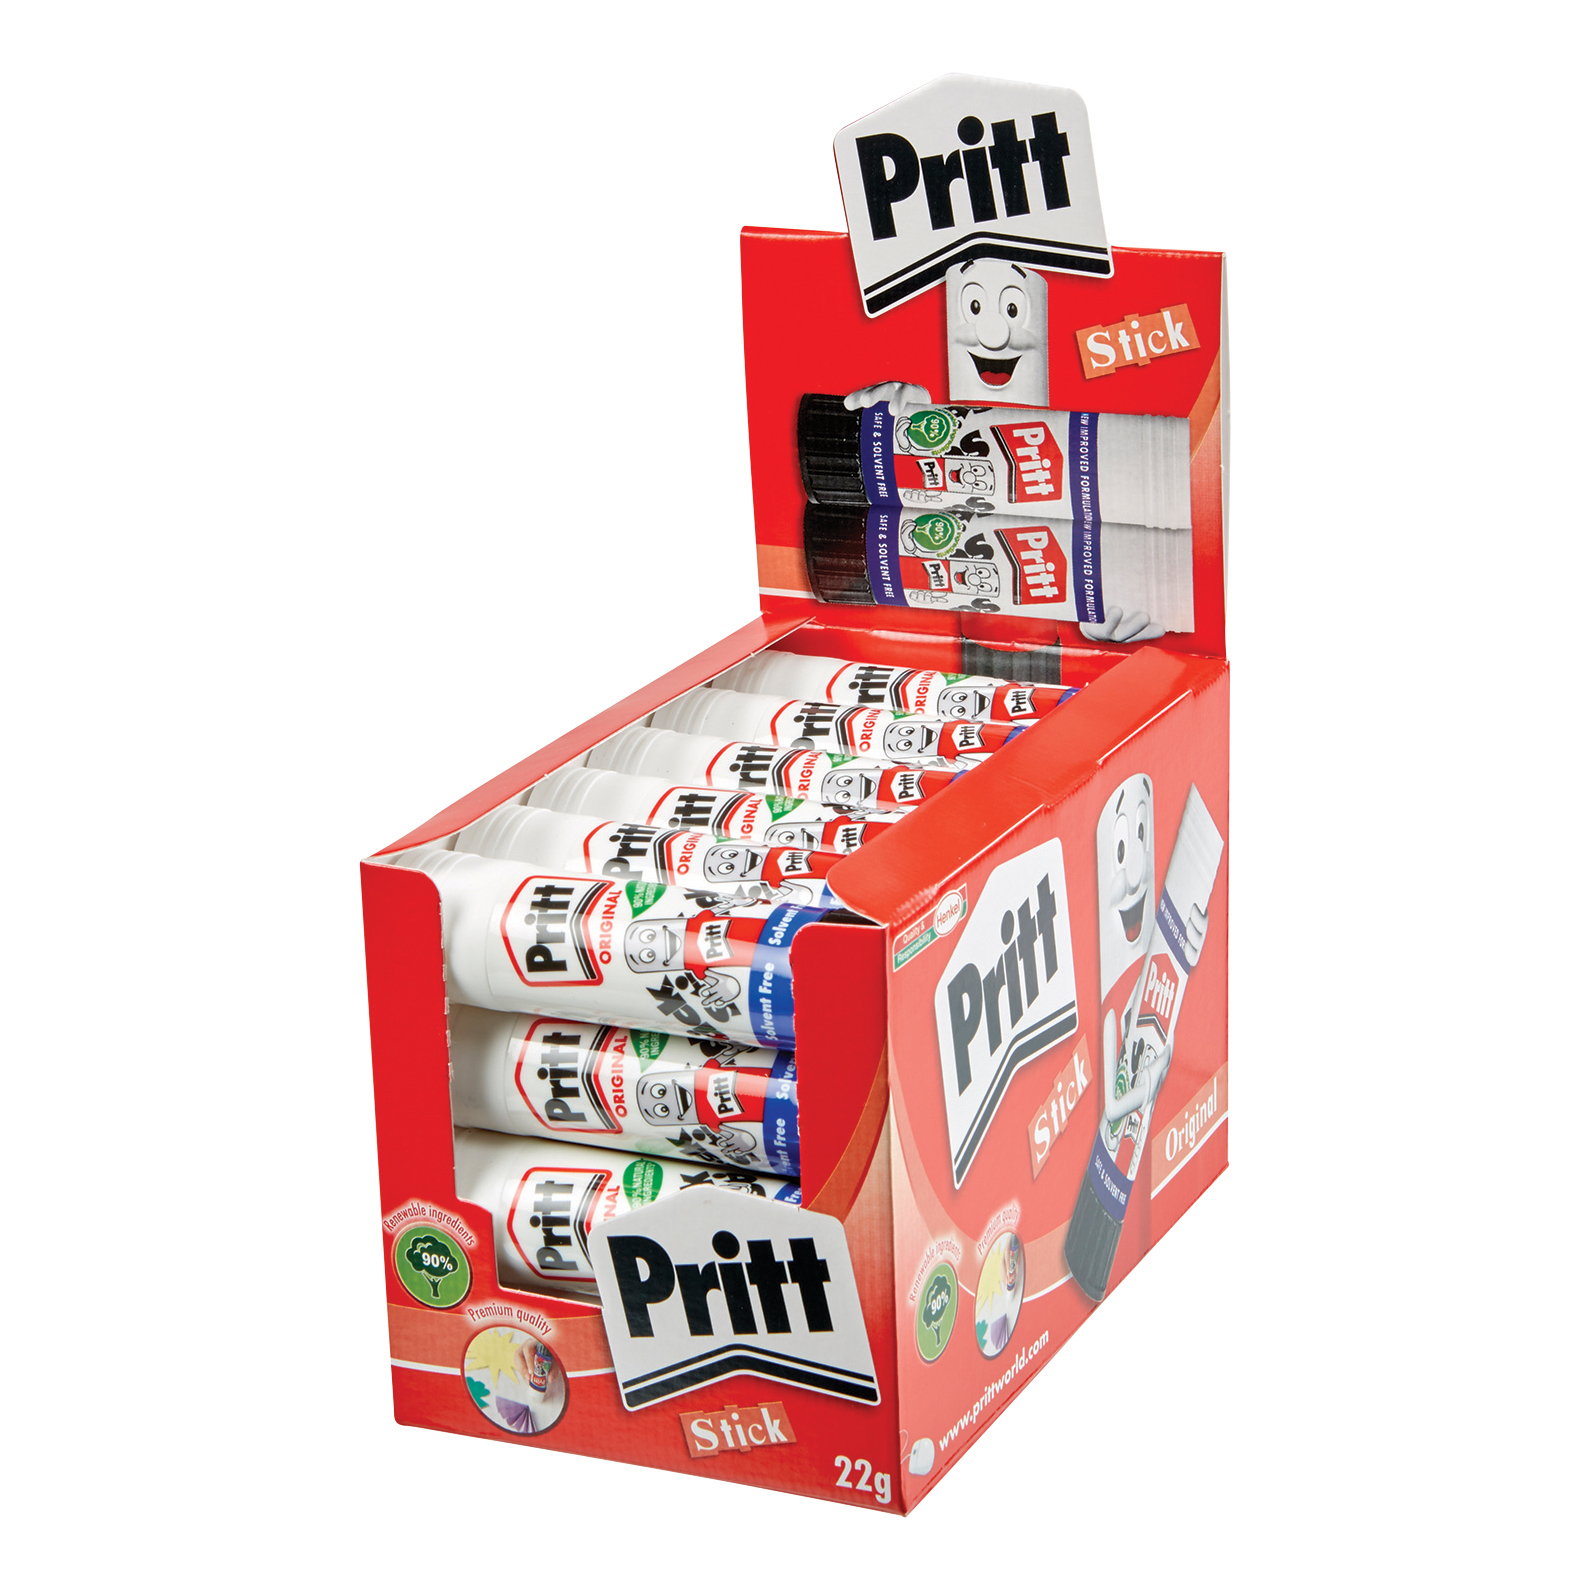 Pritt Stick Glue Solid Washable Non-toxic Medium 22g Ref 1564150 [Pack 24]